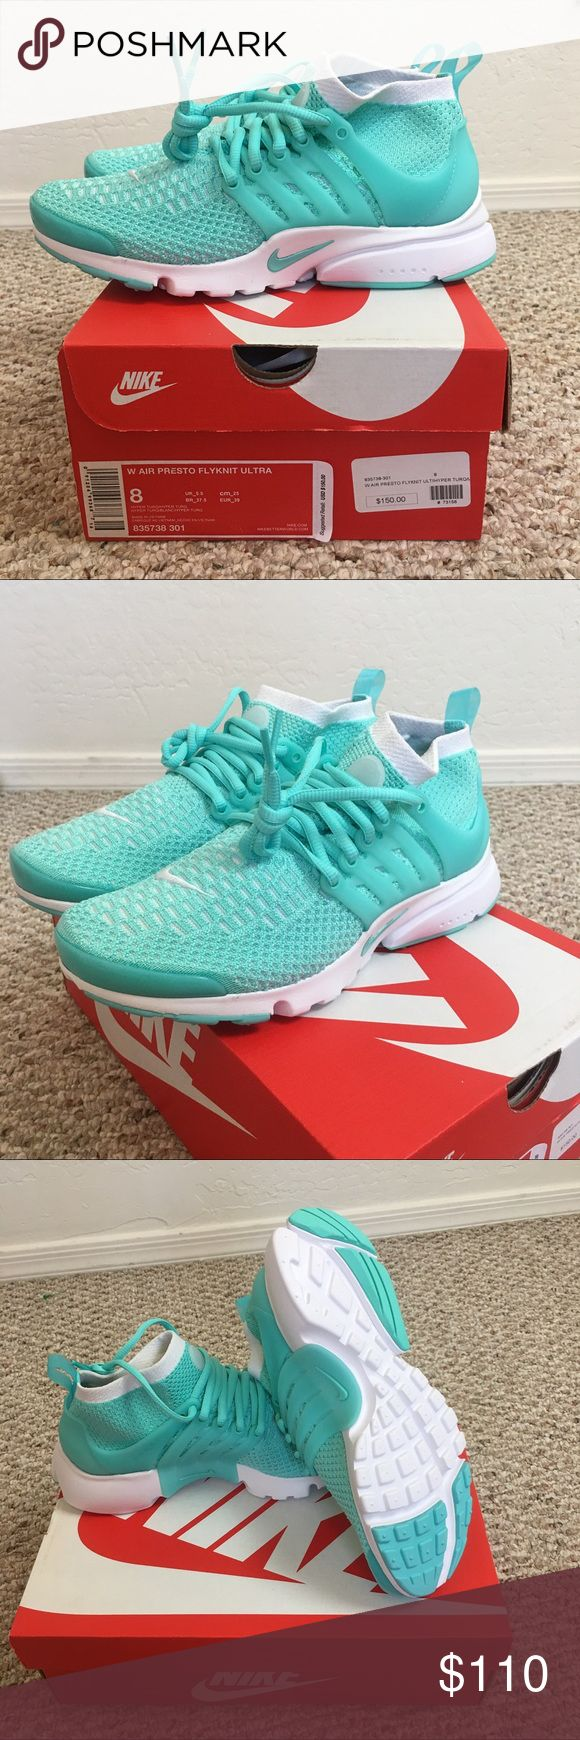 Home nike wmns air presto flyknit ultra midnight turquoise olive - Nike Air Presto Flyknit Ultra Running Shoes Brand New In Box Never Worn Womens Nike Air